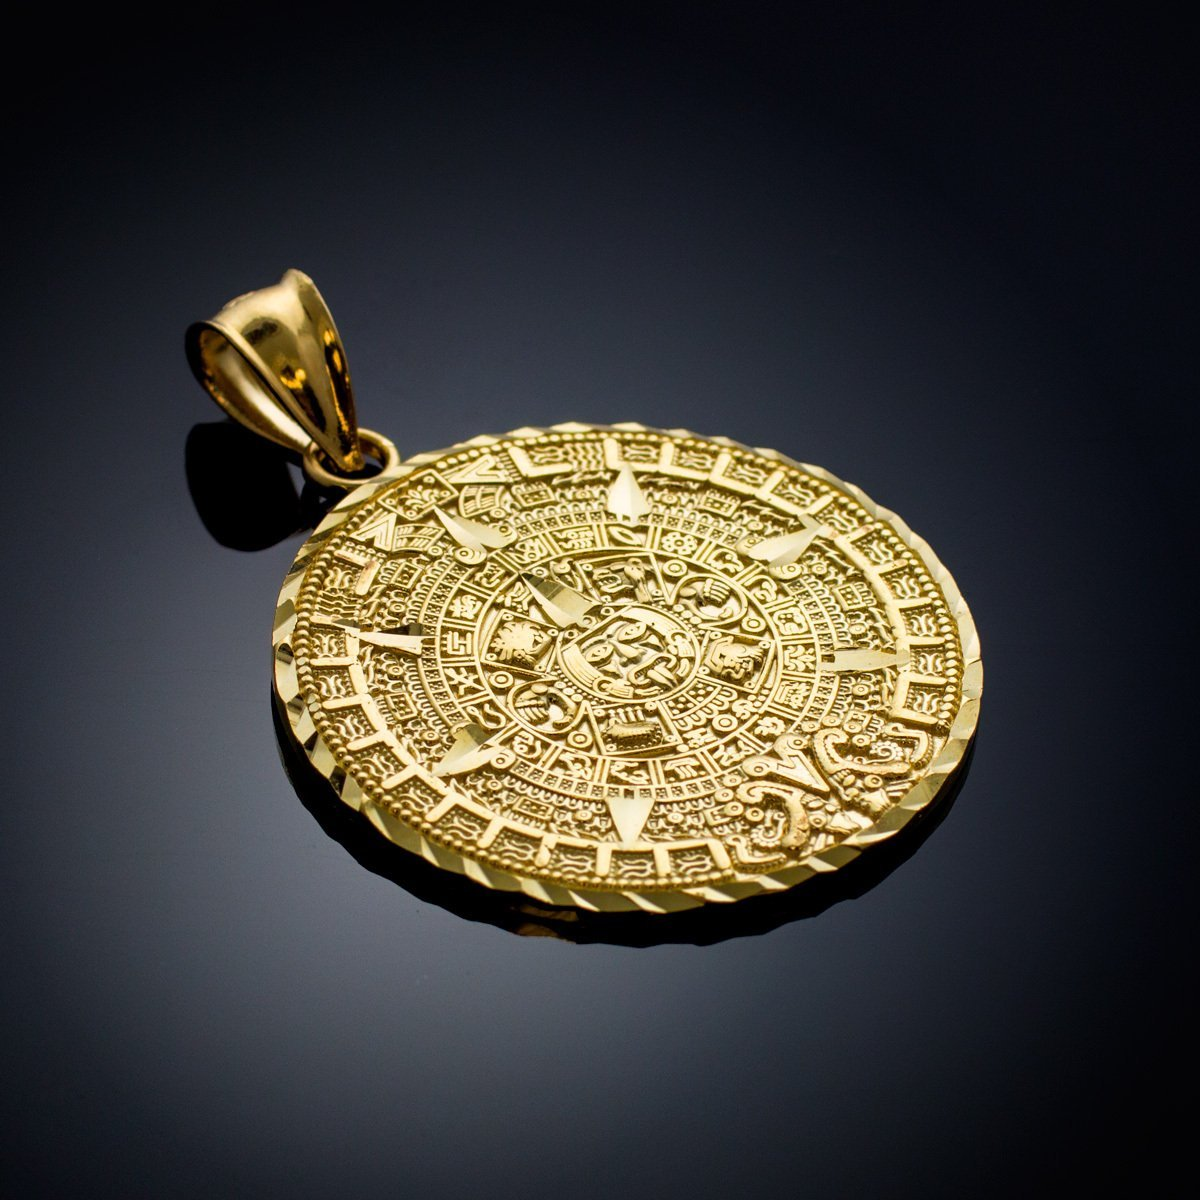 Amazon 14k yellow gold aztec charm mayan calendar pendant 254 amazon 14k yellow gold aztec charm mayan calendar pendant 254 millimeters mayan jewelry jewelry mozeypictures Images